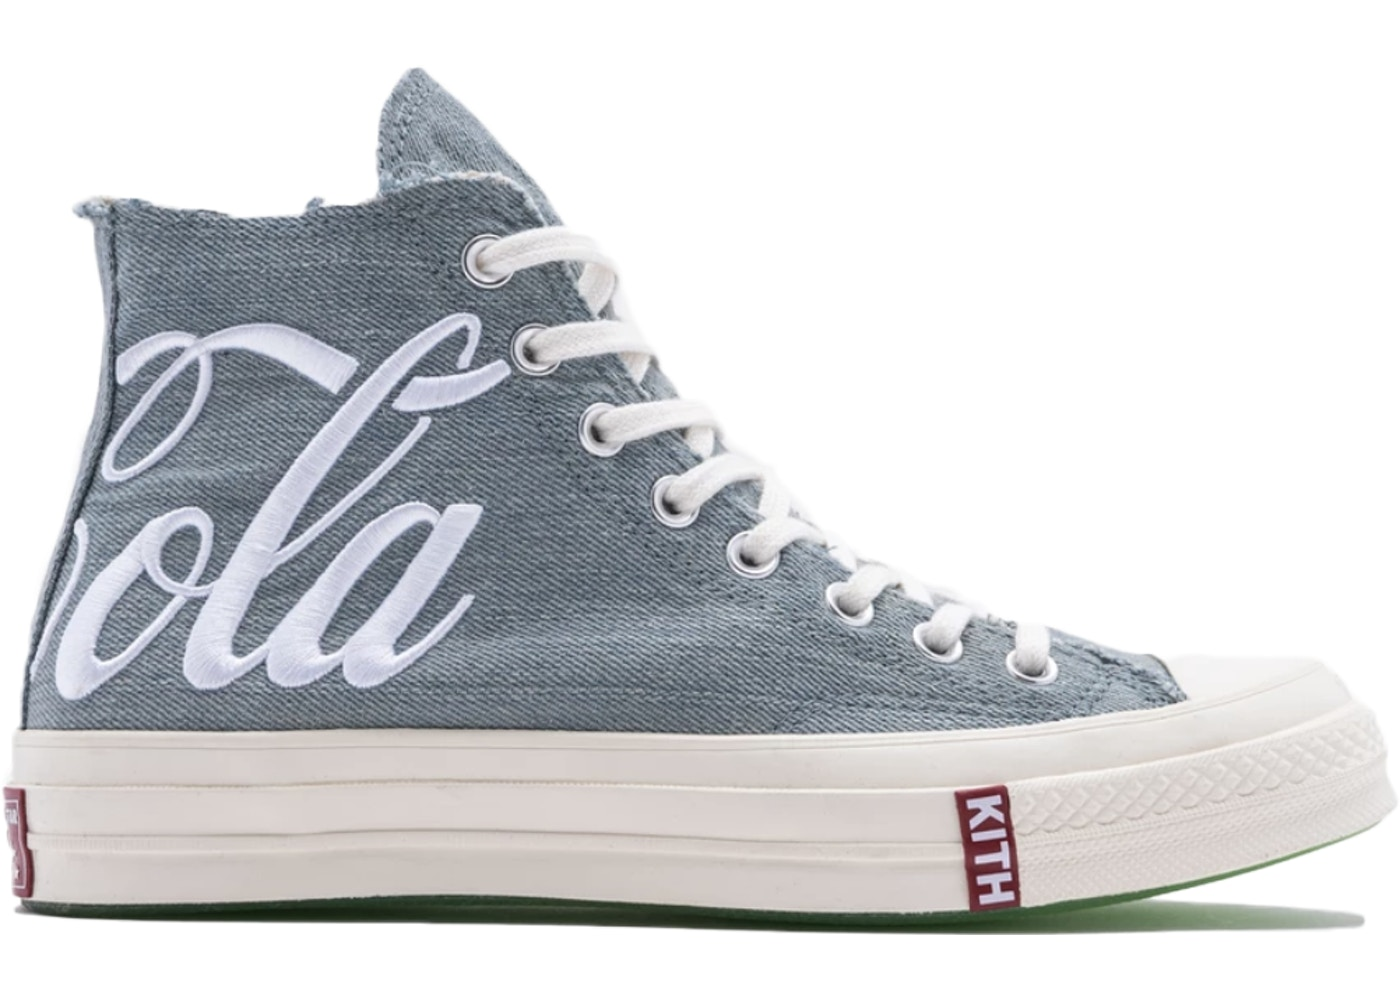 Converse Chuck Taylor All-Star 70s Hi Kith Coca-Cola Denim (2019)